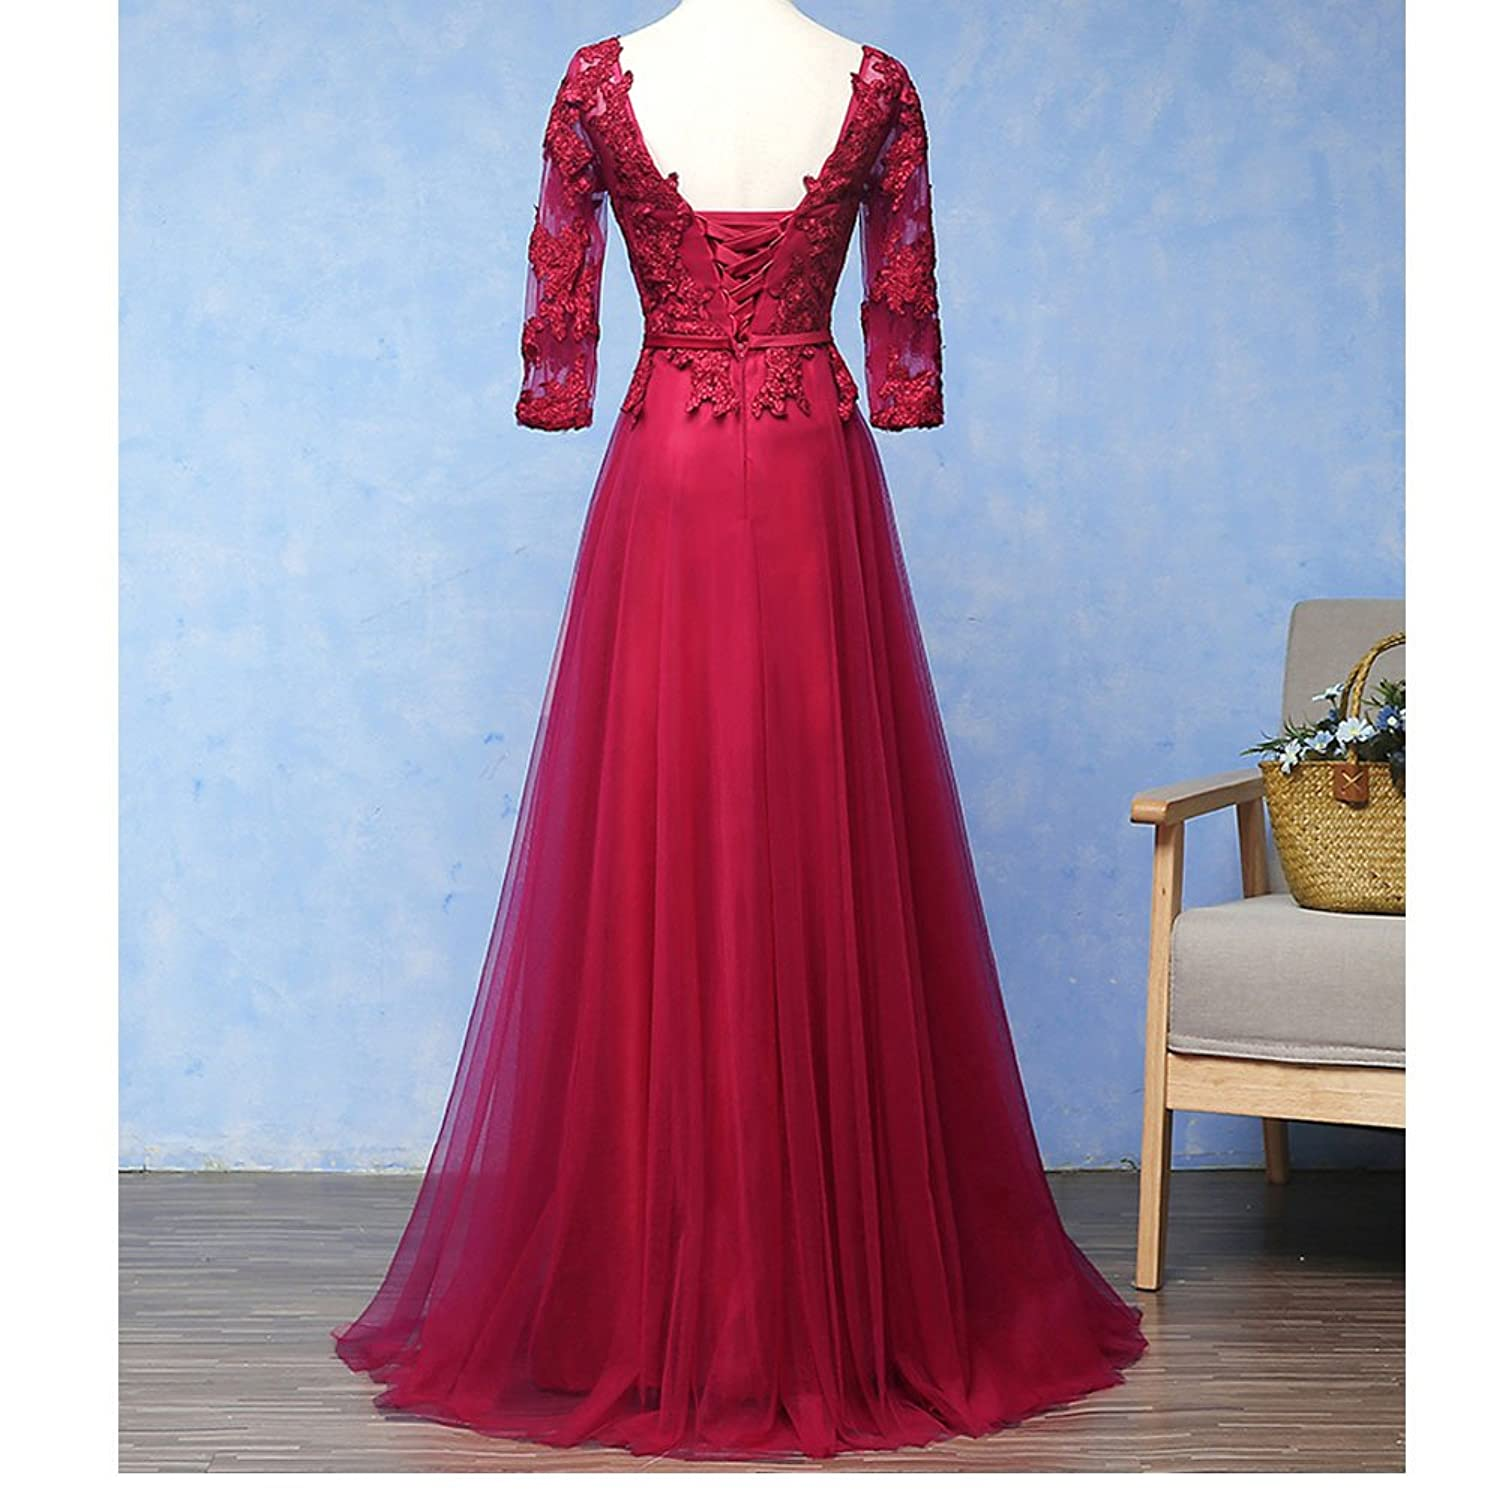 nymph Womens A-line Floor Length With Sleeves Elegant Formal Evening Dresses at Amazon Womens Clothing store: